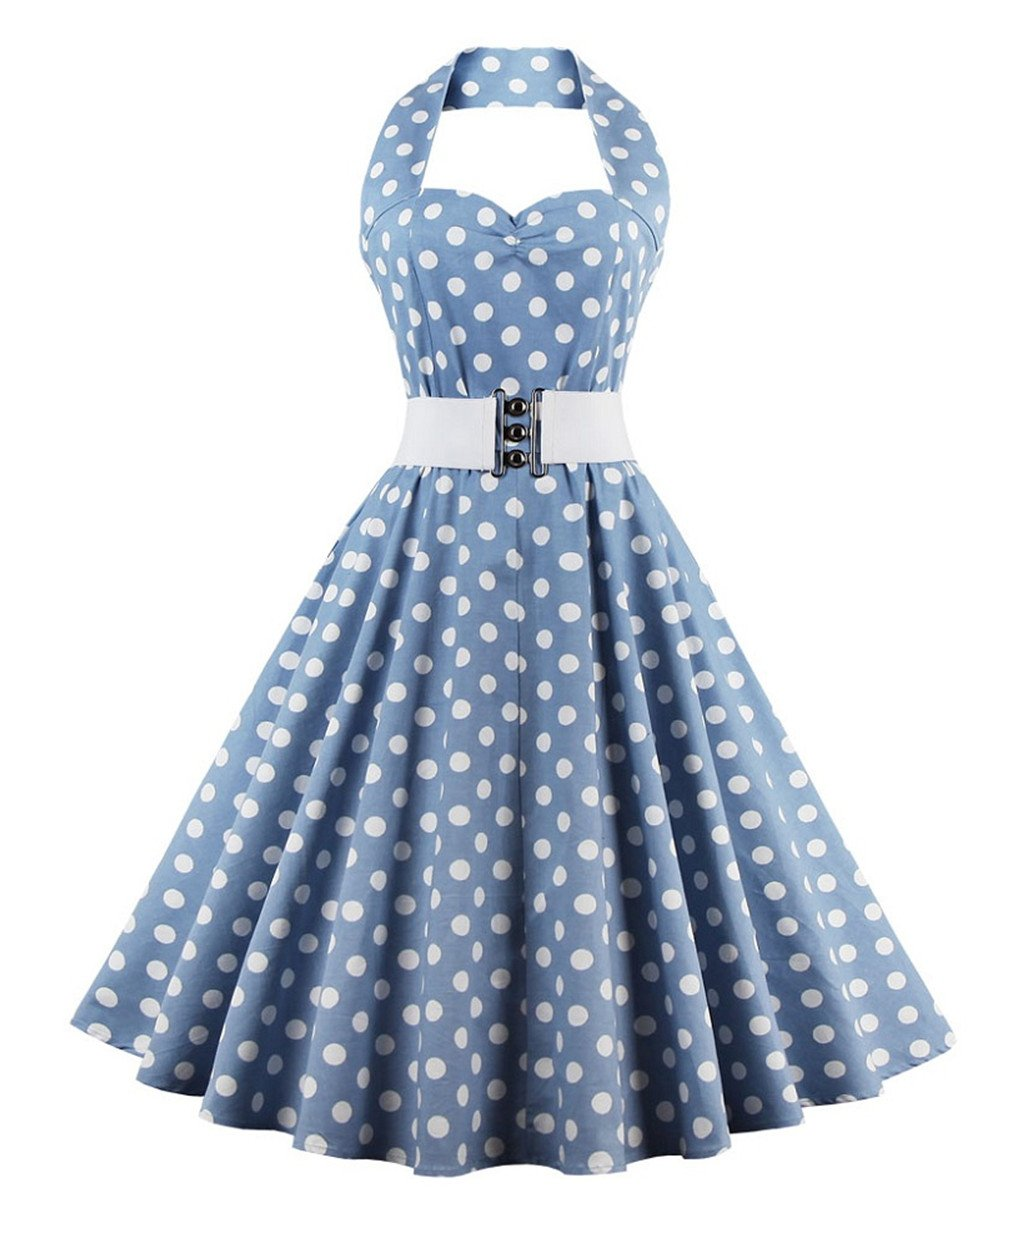 ZAFUL Women's 50s Vintage Polka Dots Halter Swing Dress Party Gown with Belt 0